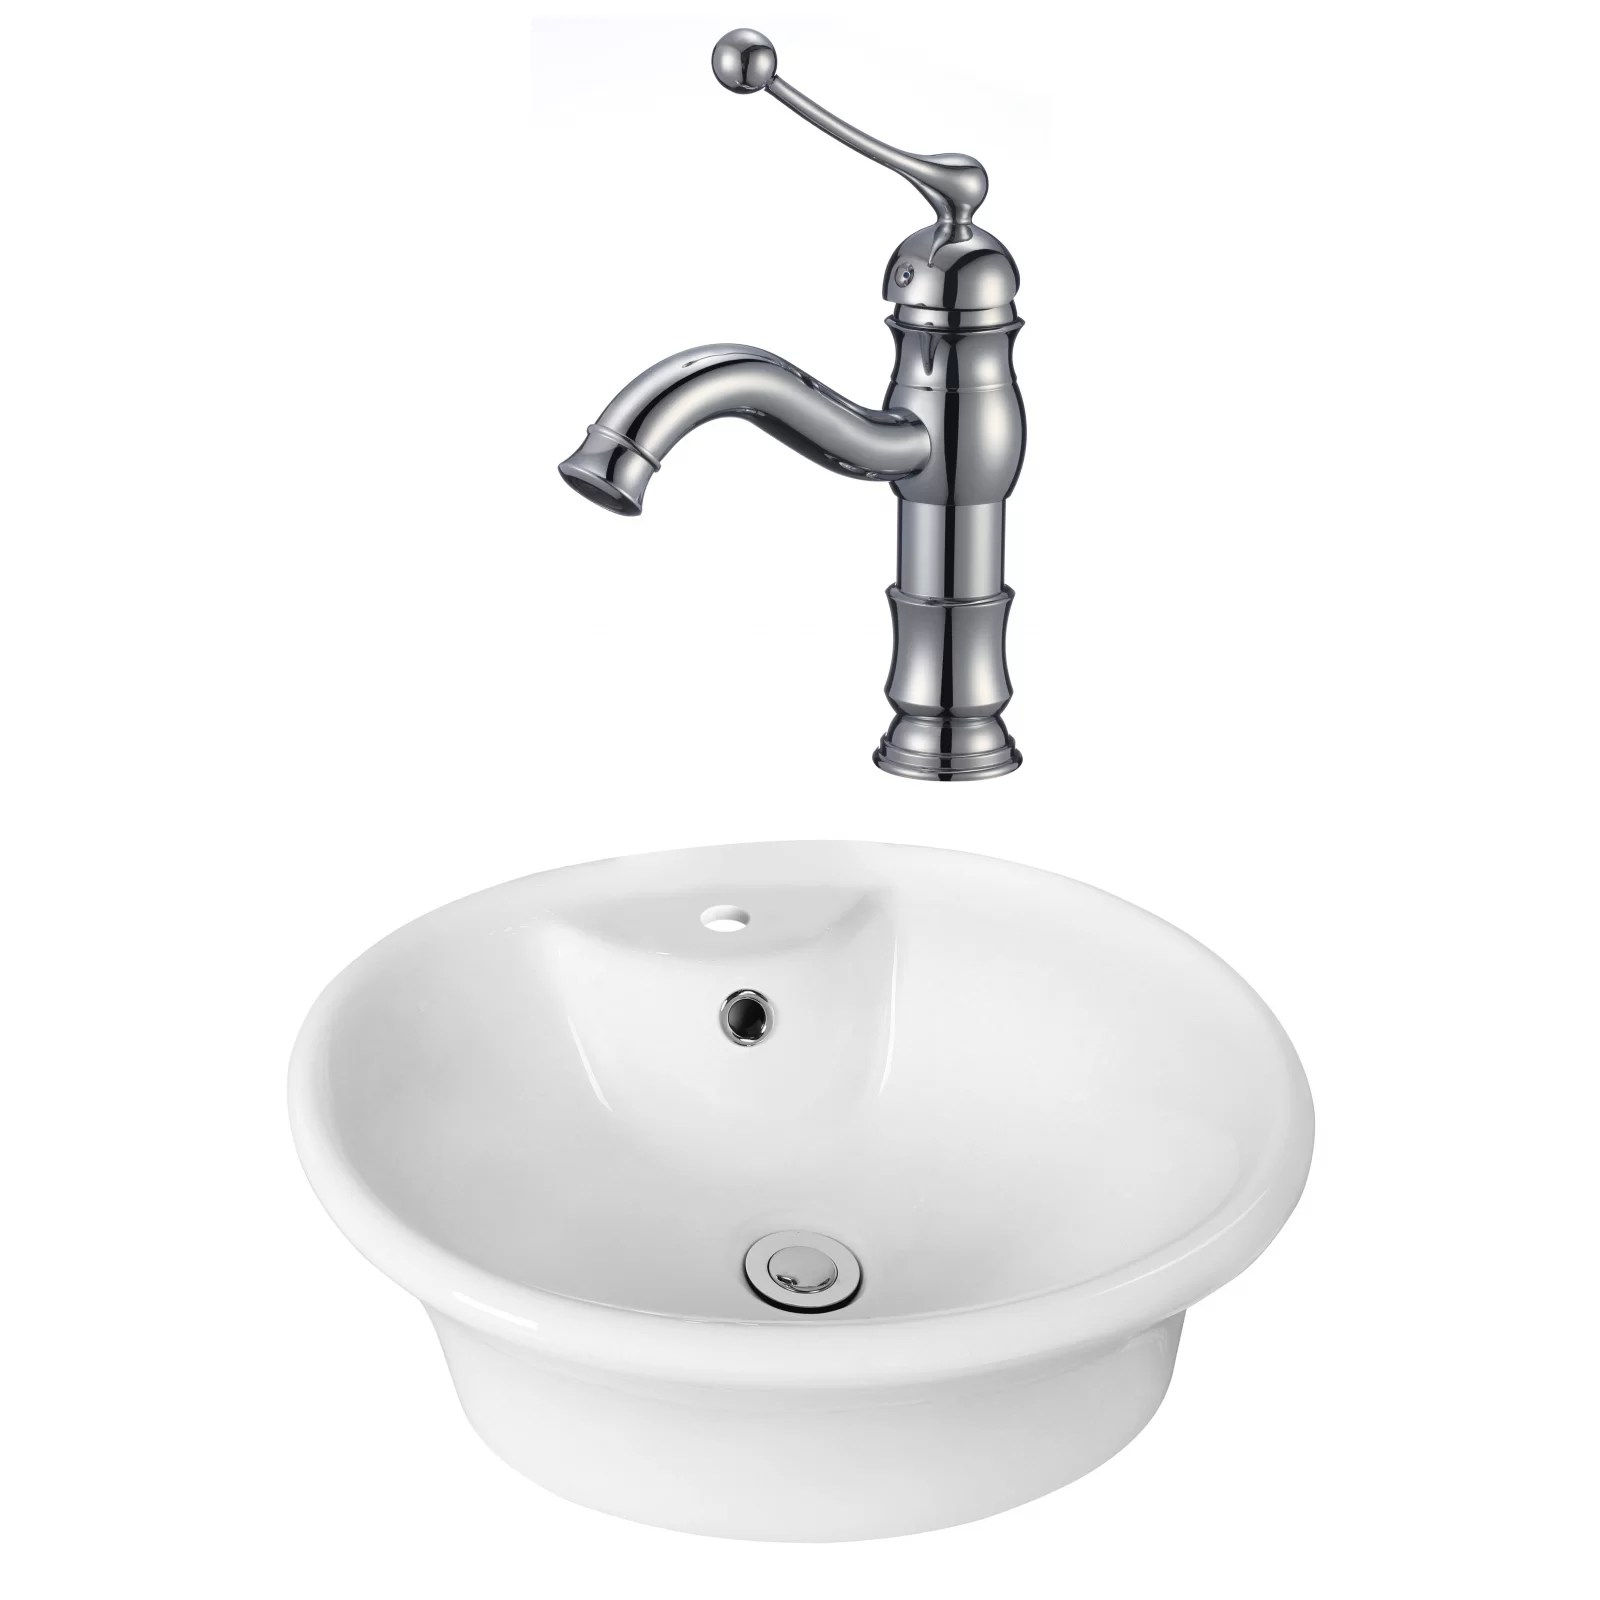 xena farmhouse semi recessed ceramic rectangular vessel bathroom sink with faucet and overflow